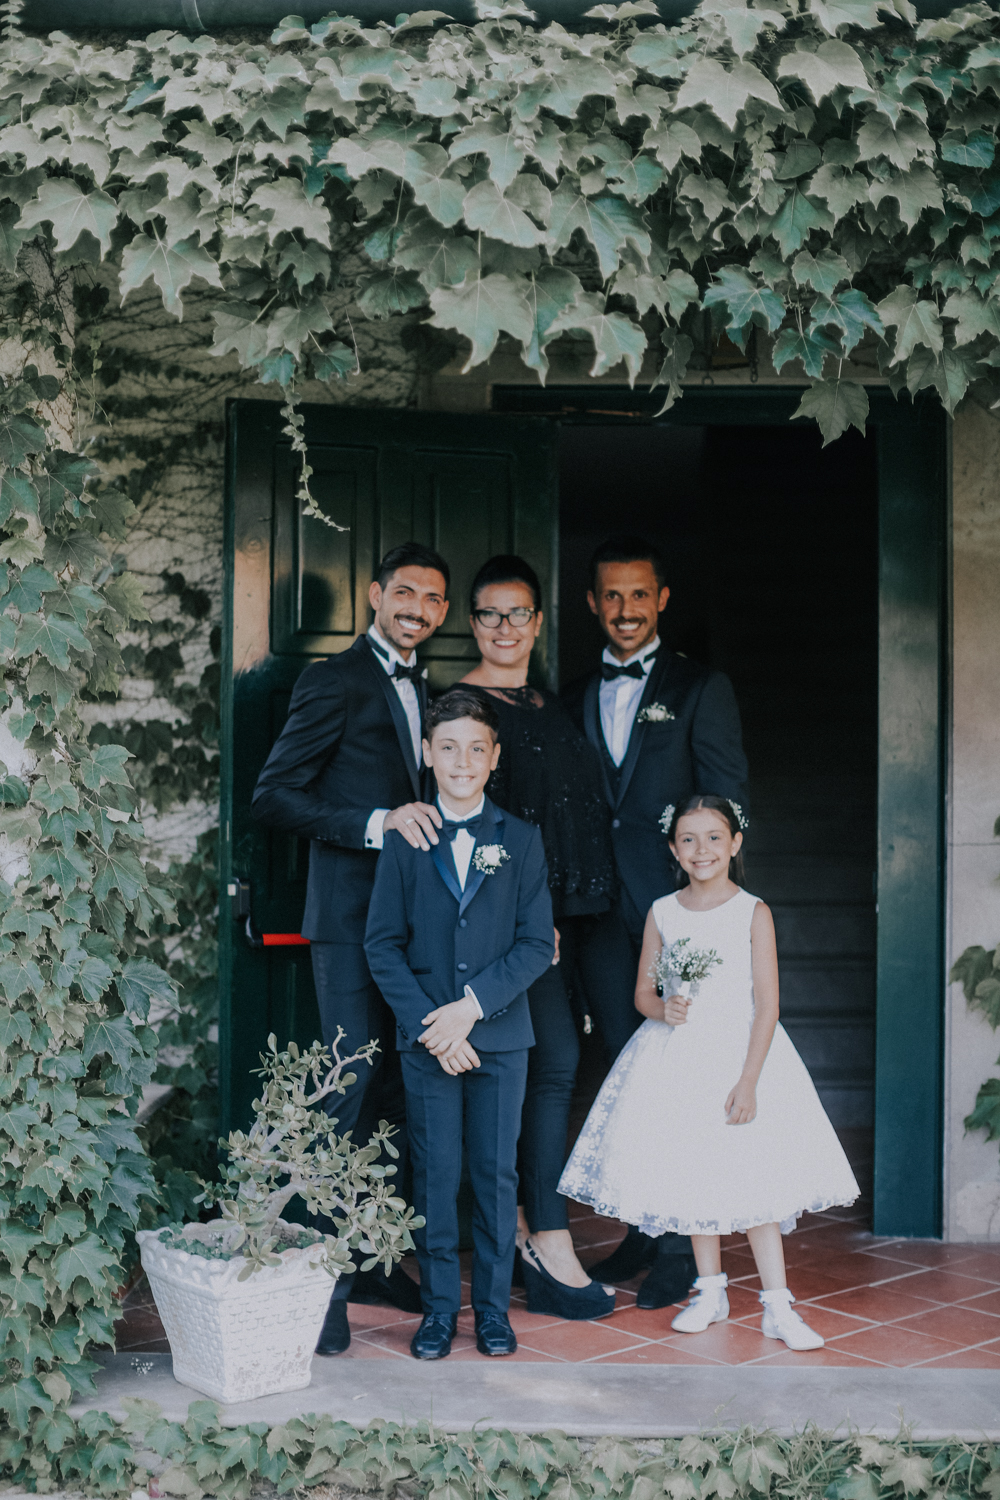 https://www.weddingamalfi.com/wp-content/uploads/Alessandro-and-Diego-with-Alessandra-Wedding-Amalfi-and-flower-girl.jpg